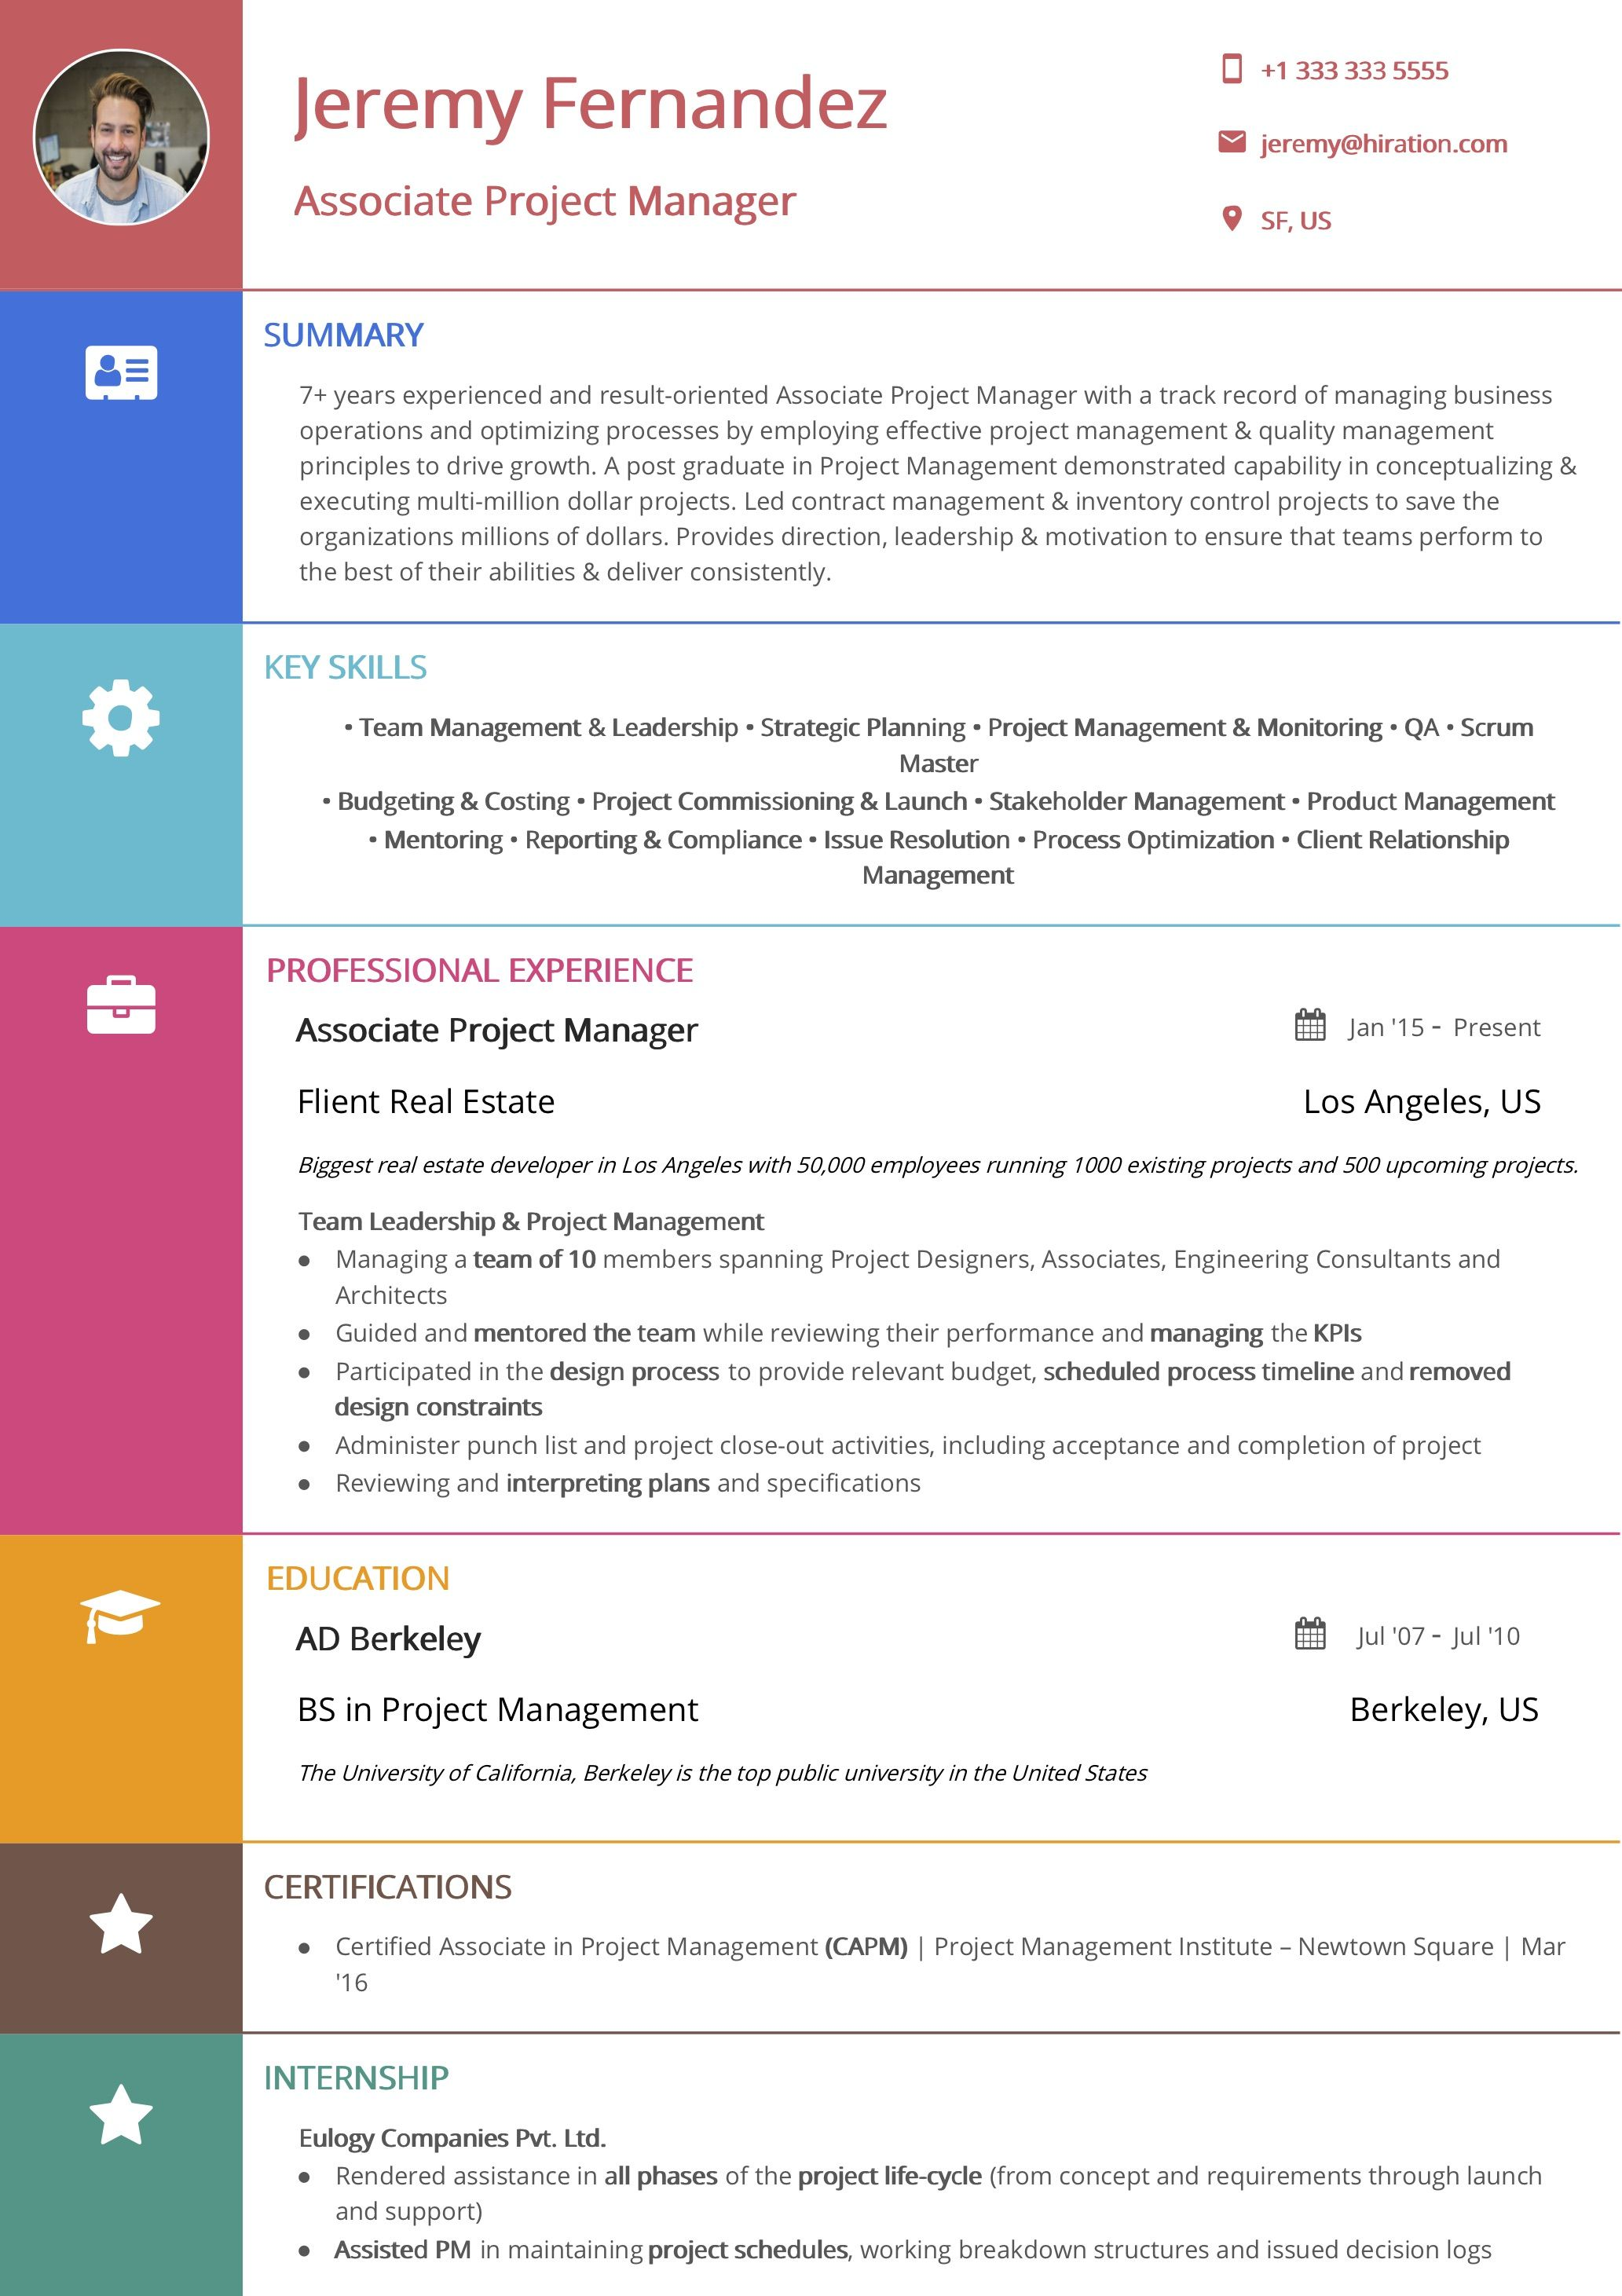 Resume template professional image by Hiration on https